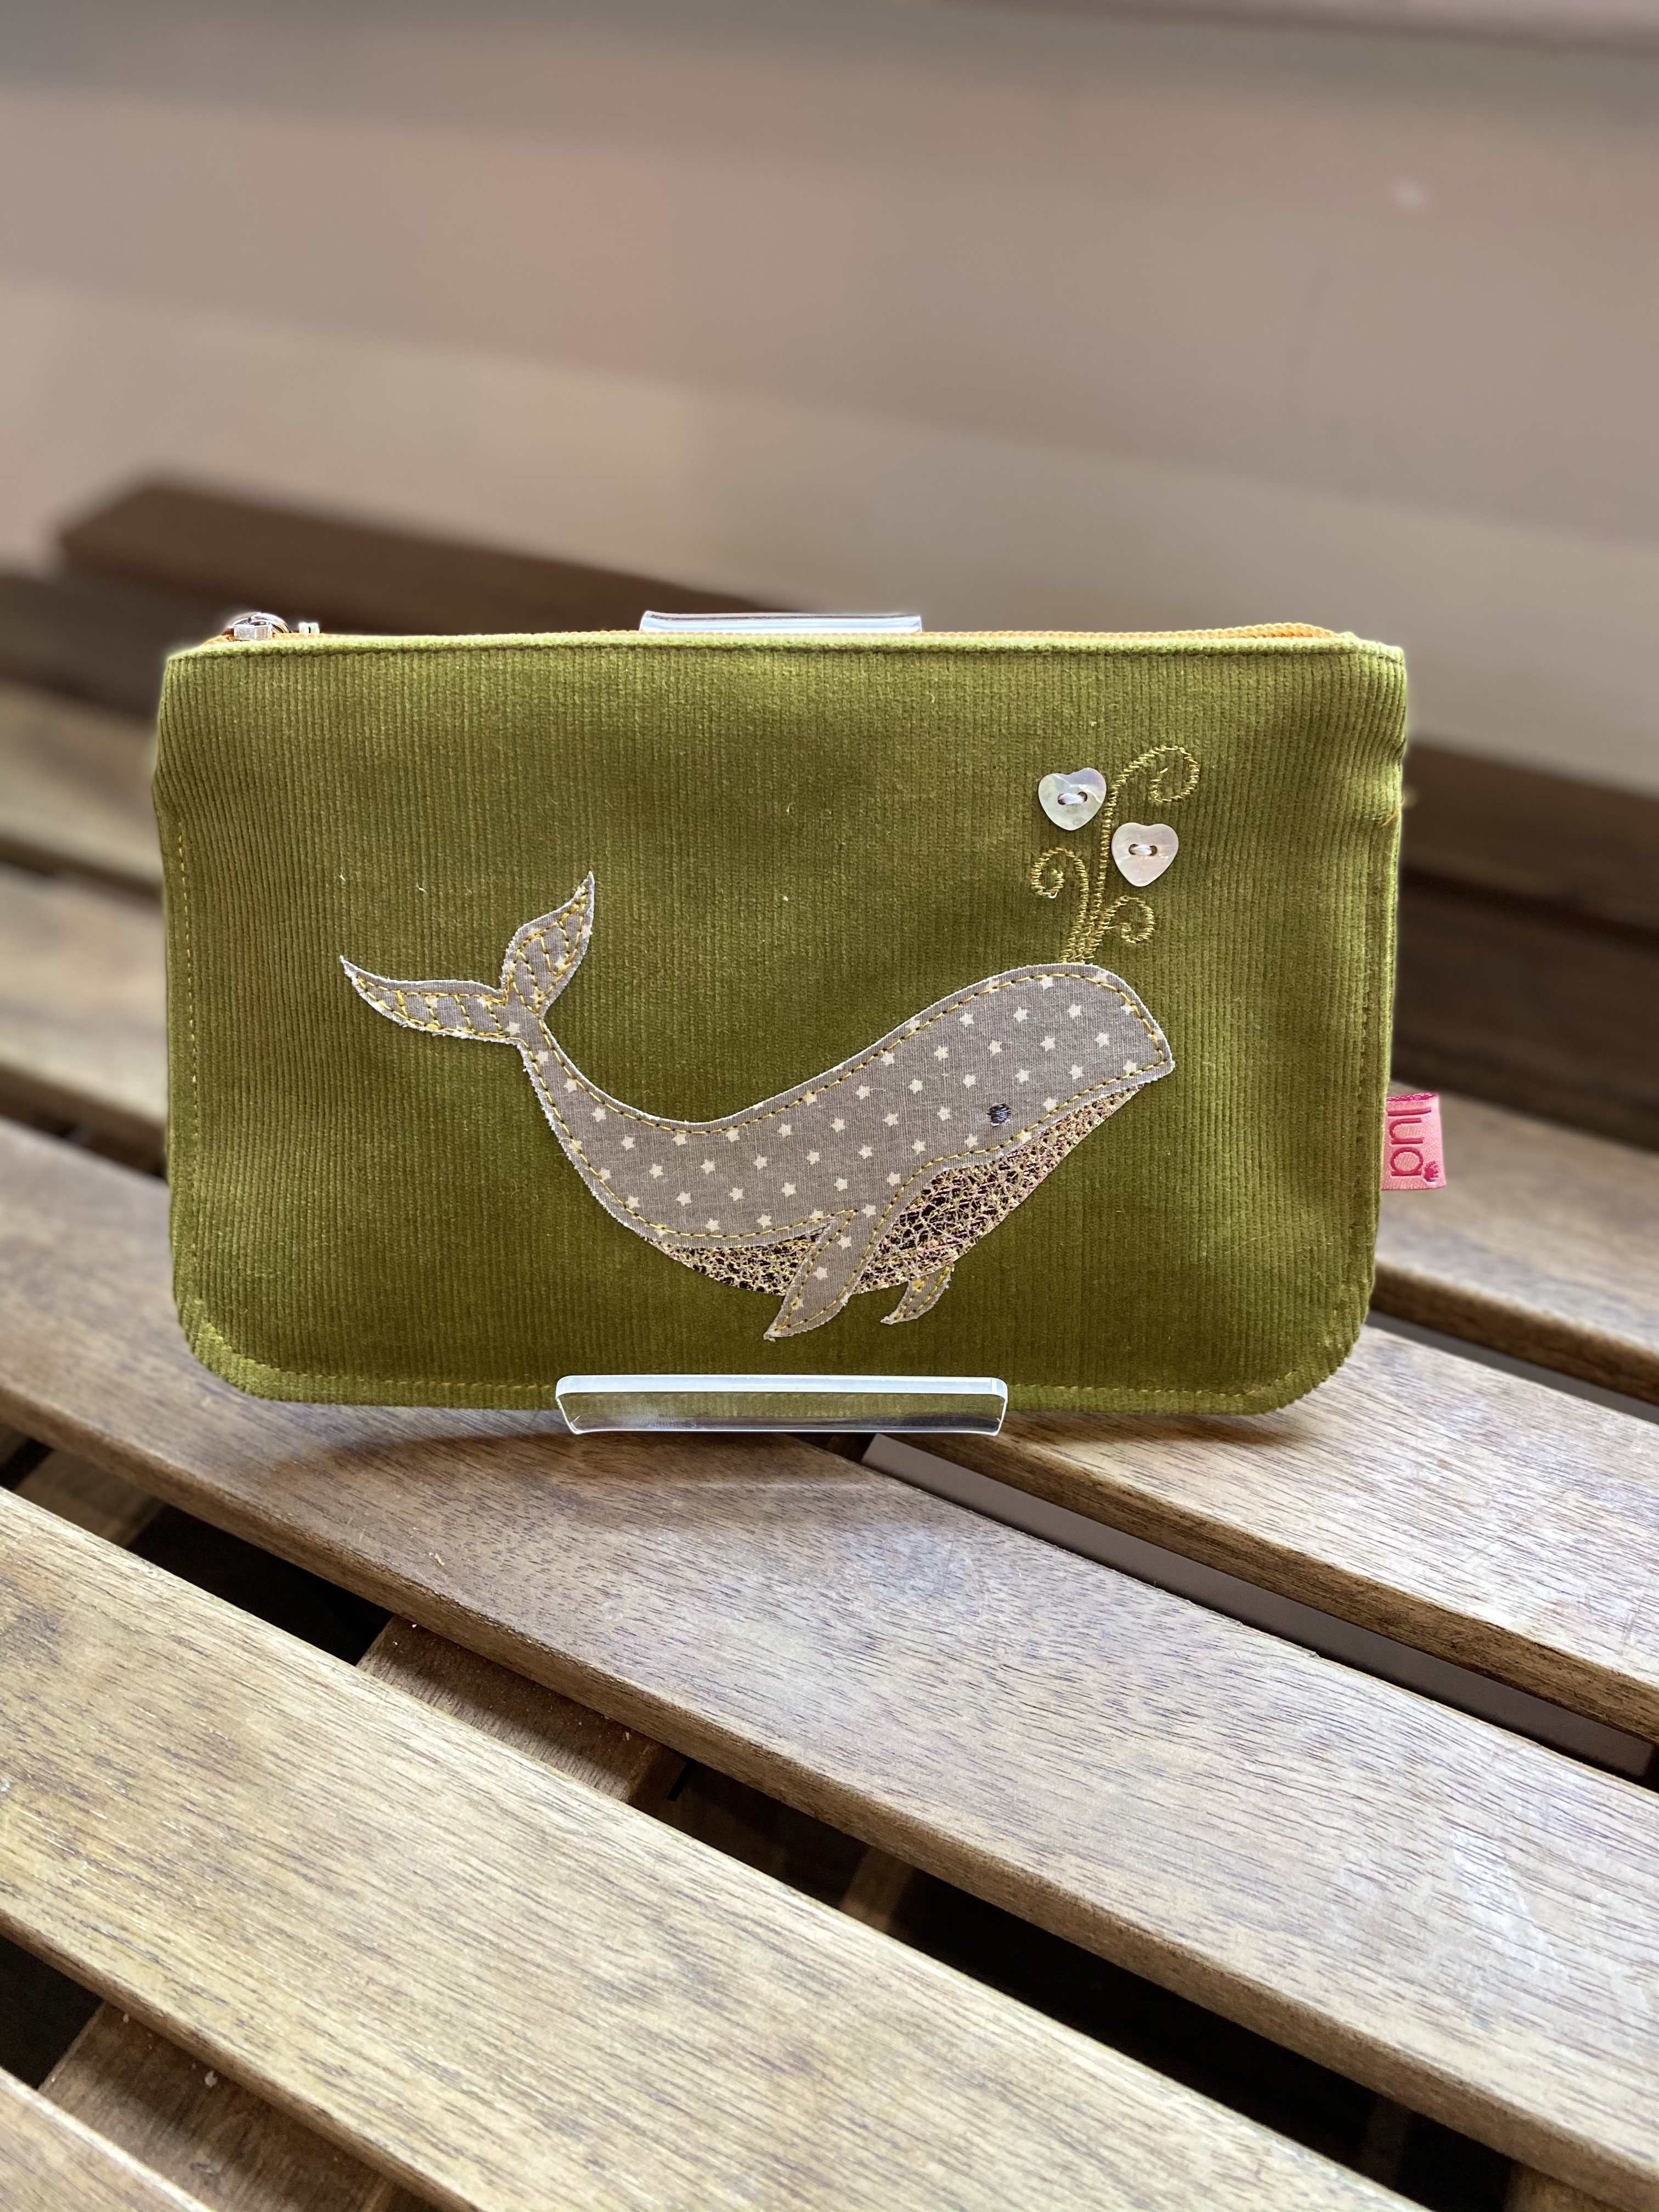 Lua Green Large Whale Purse SALE Now £10.00